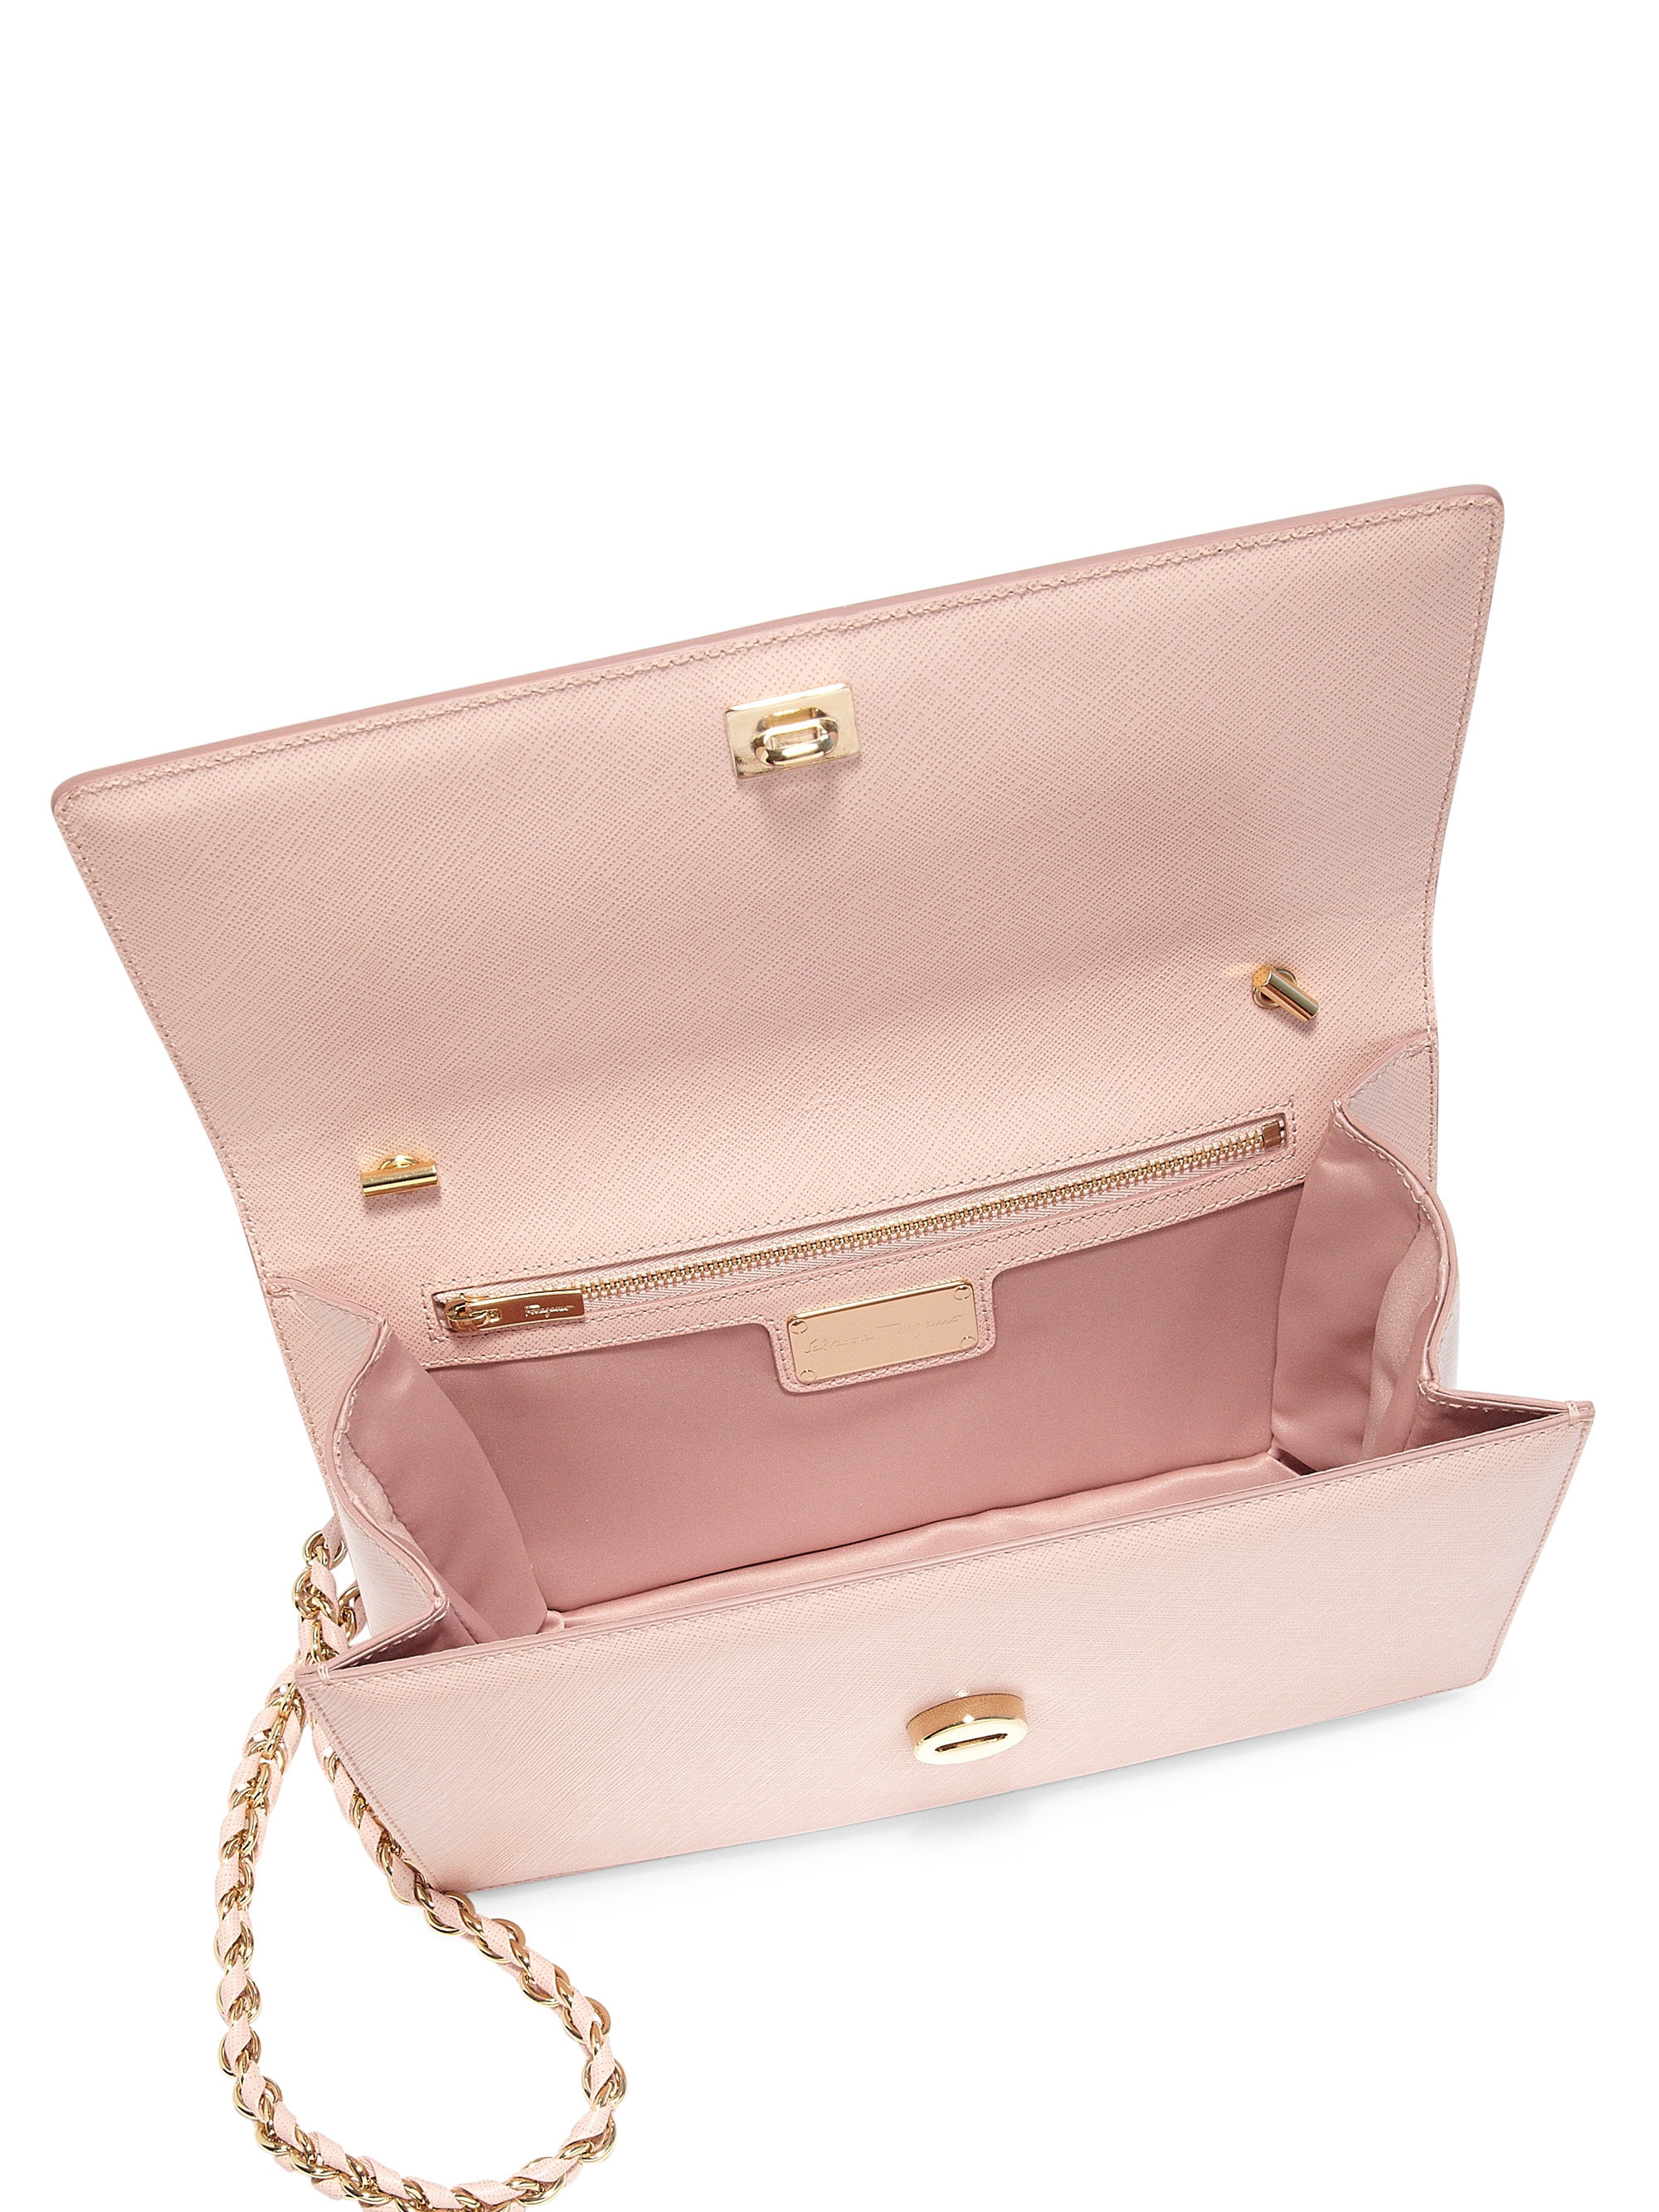 935f79a25706 Lyst - Ferragamo Ginny Saffiano Leather Shoulder Bag in Pink